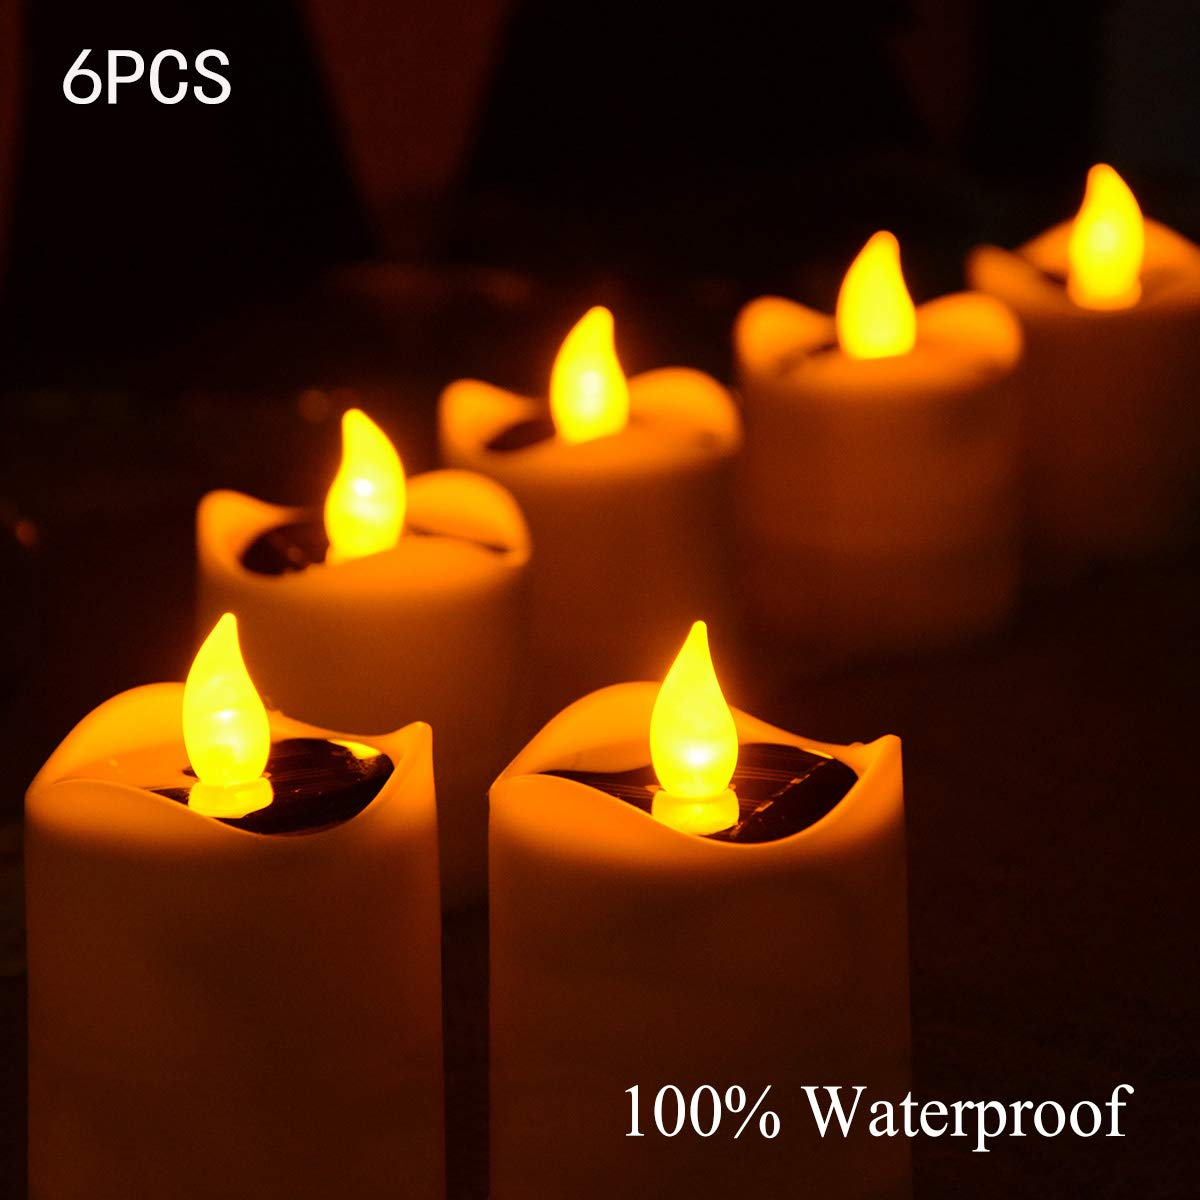 Abkshine 6 Pack Solar Flameless Candles, Waterproof Solar Rechargeable LED Tealights, Solar Powered Flickering Table Lamp for Home Decor, Wedding, Birthday, Party Decor(Amber Yellow)